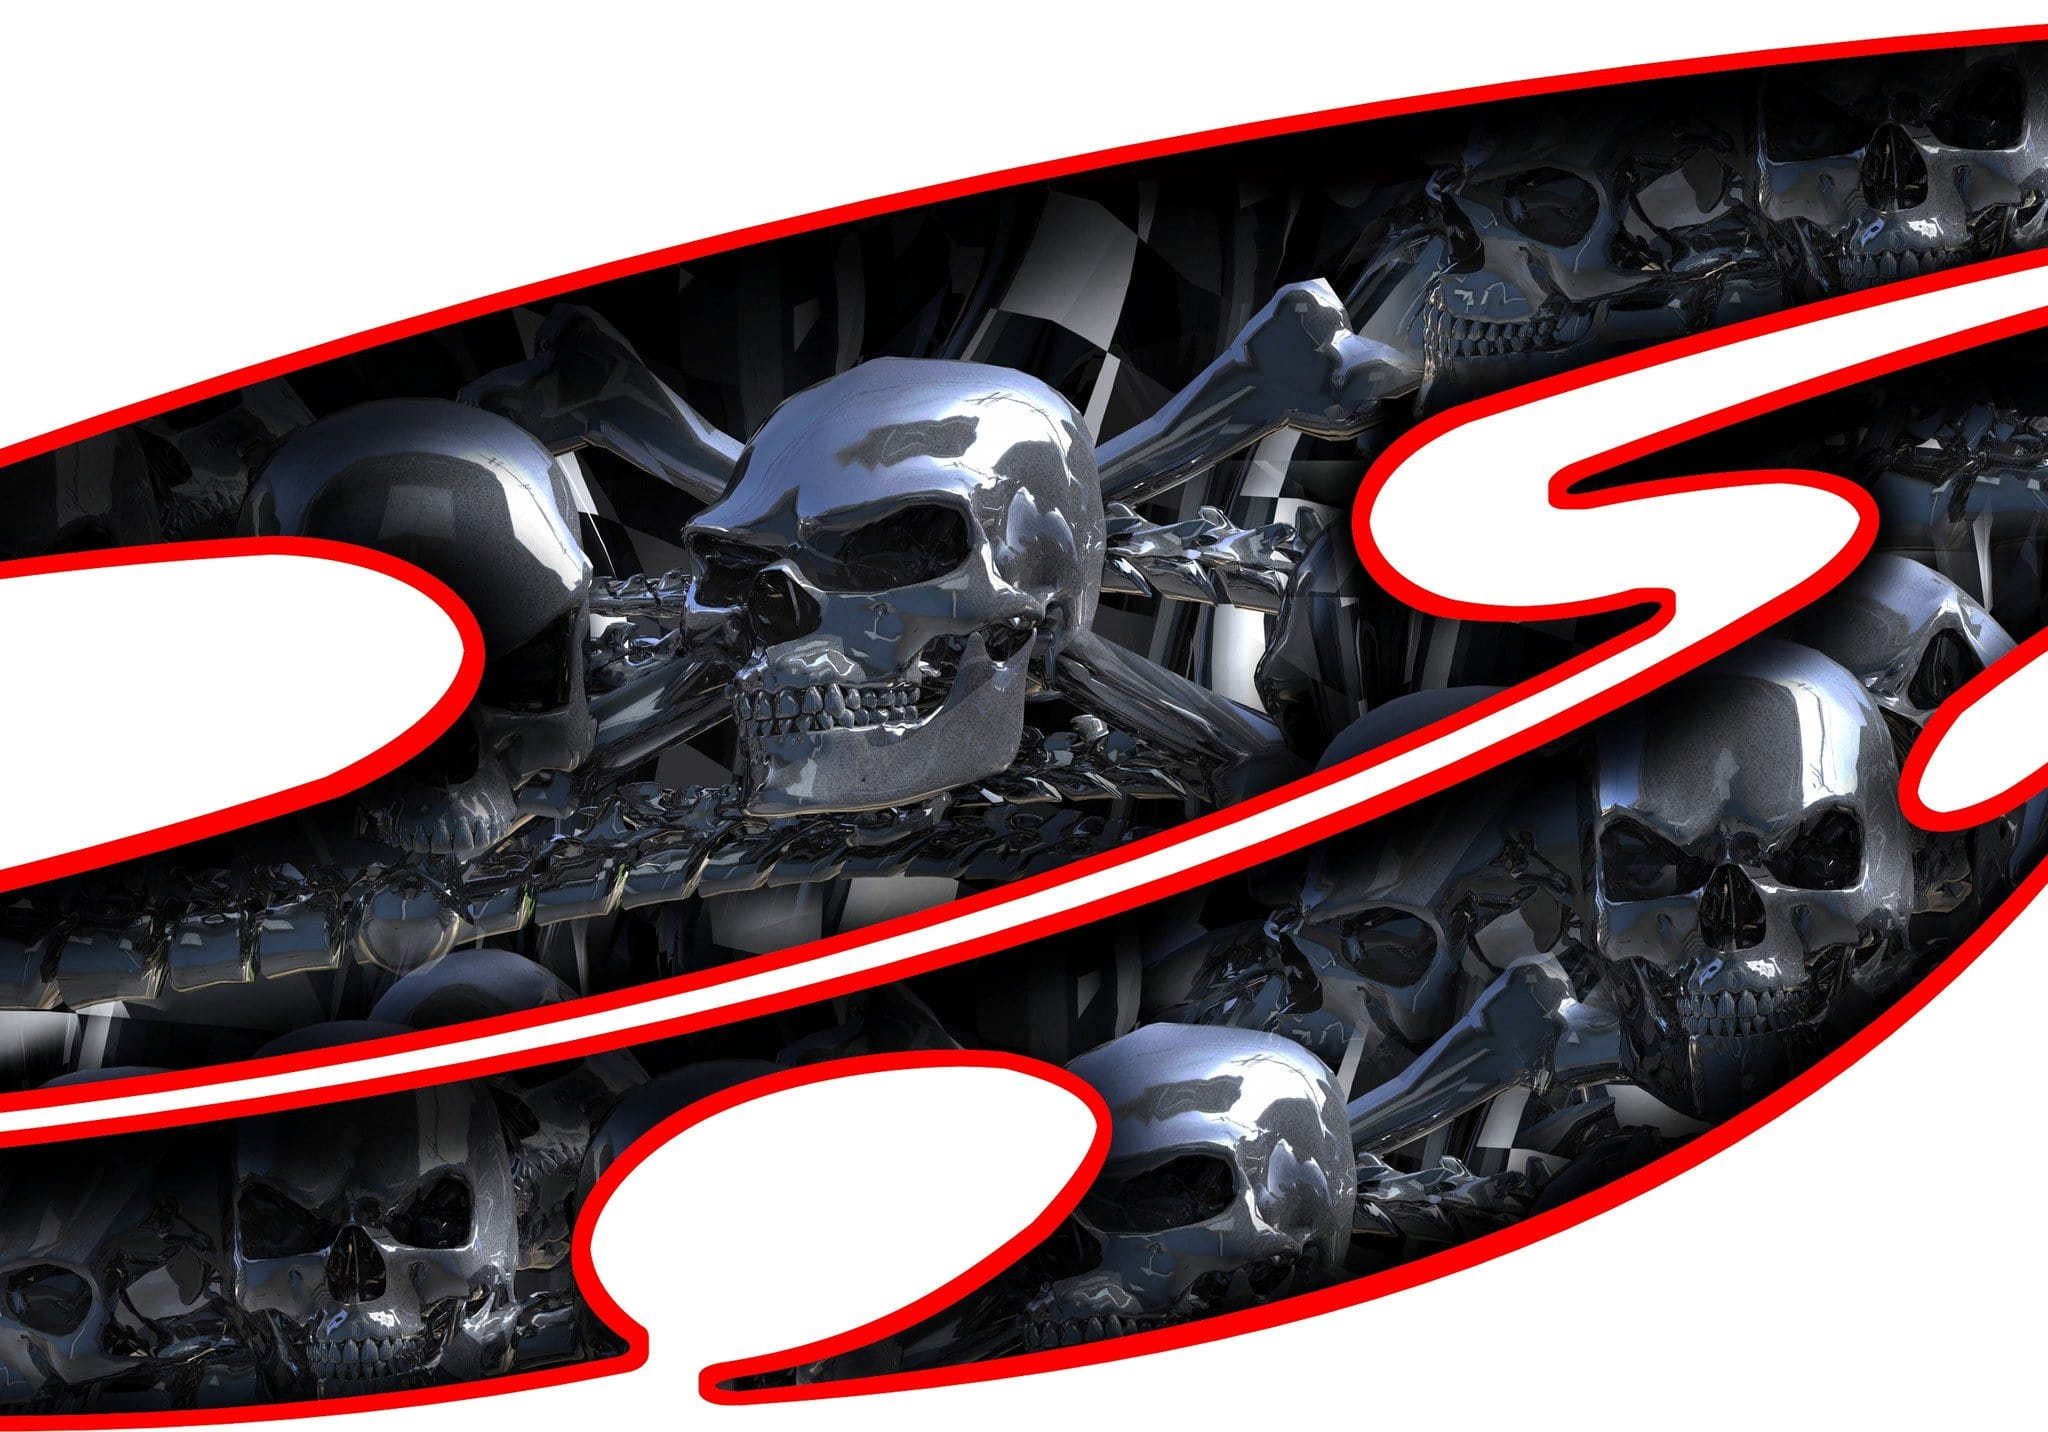 Car Skull Decals Truck Graphic Skulls Semi Chrome Skull Graphics - Skull decals for trucks